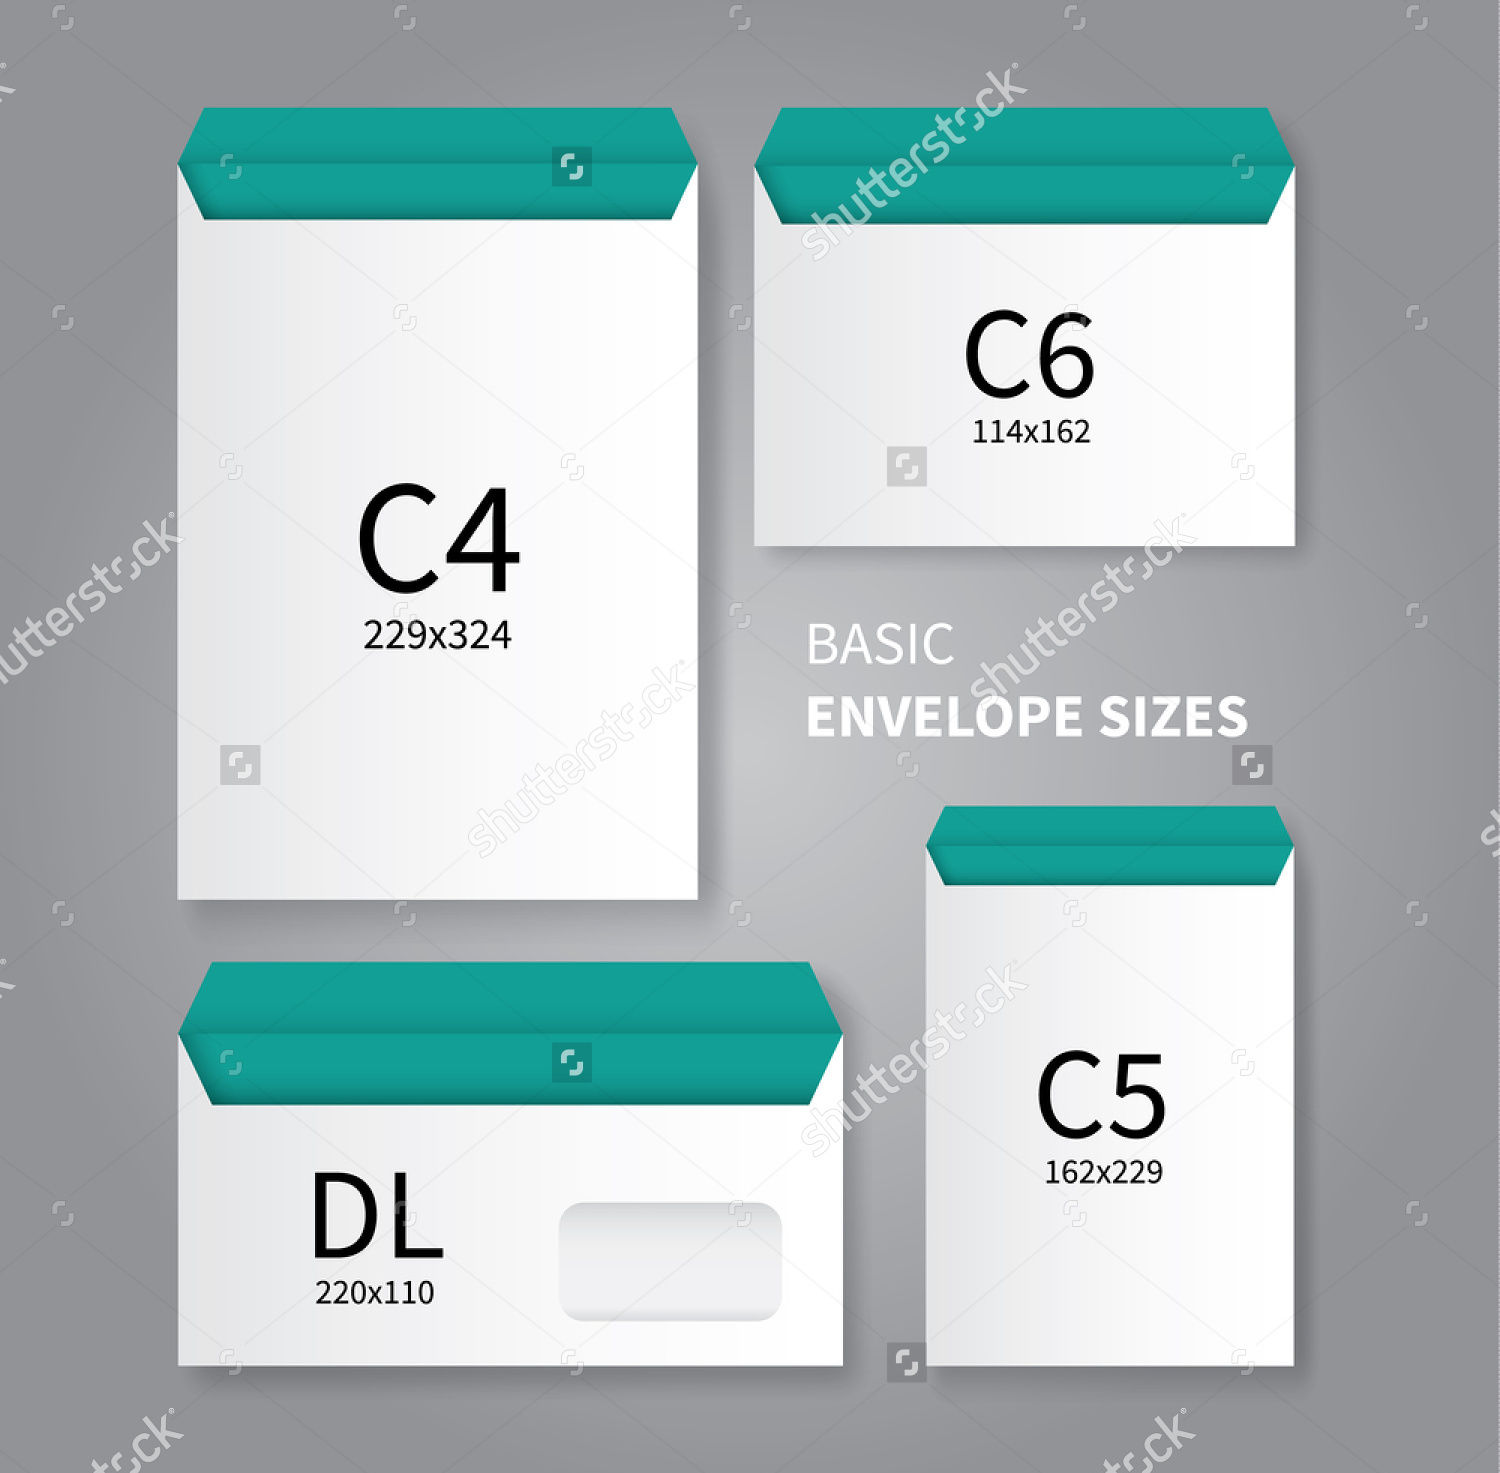 Stationery Envelope Design